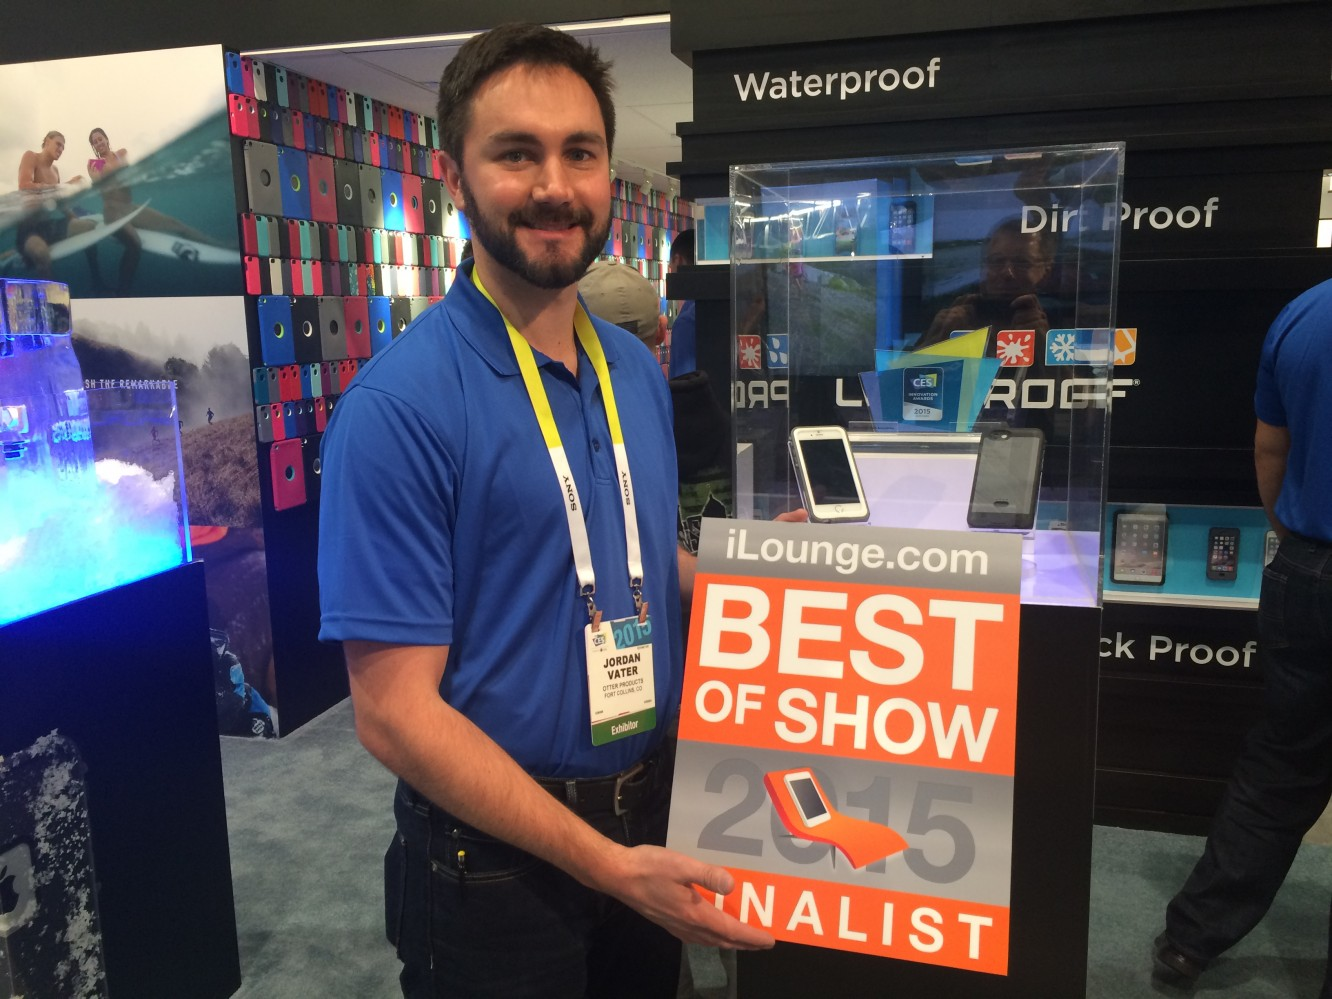 iLounge announces its CES 2015 Best of Show Awards 12